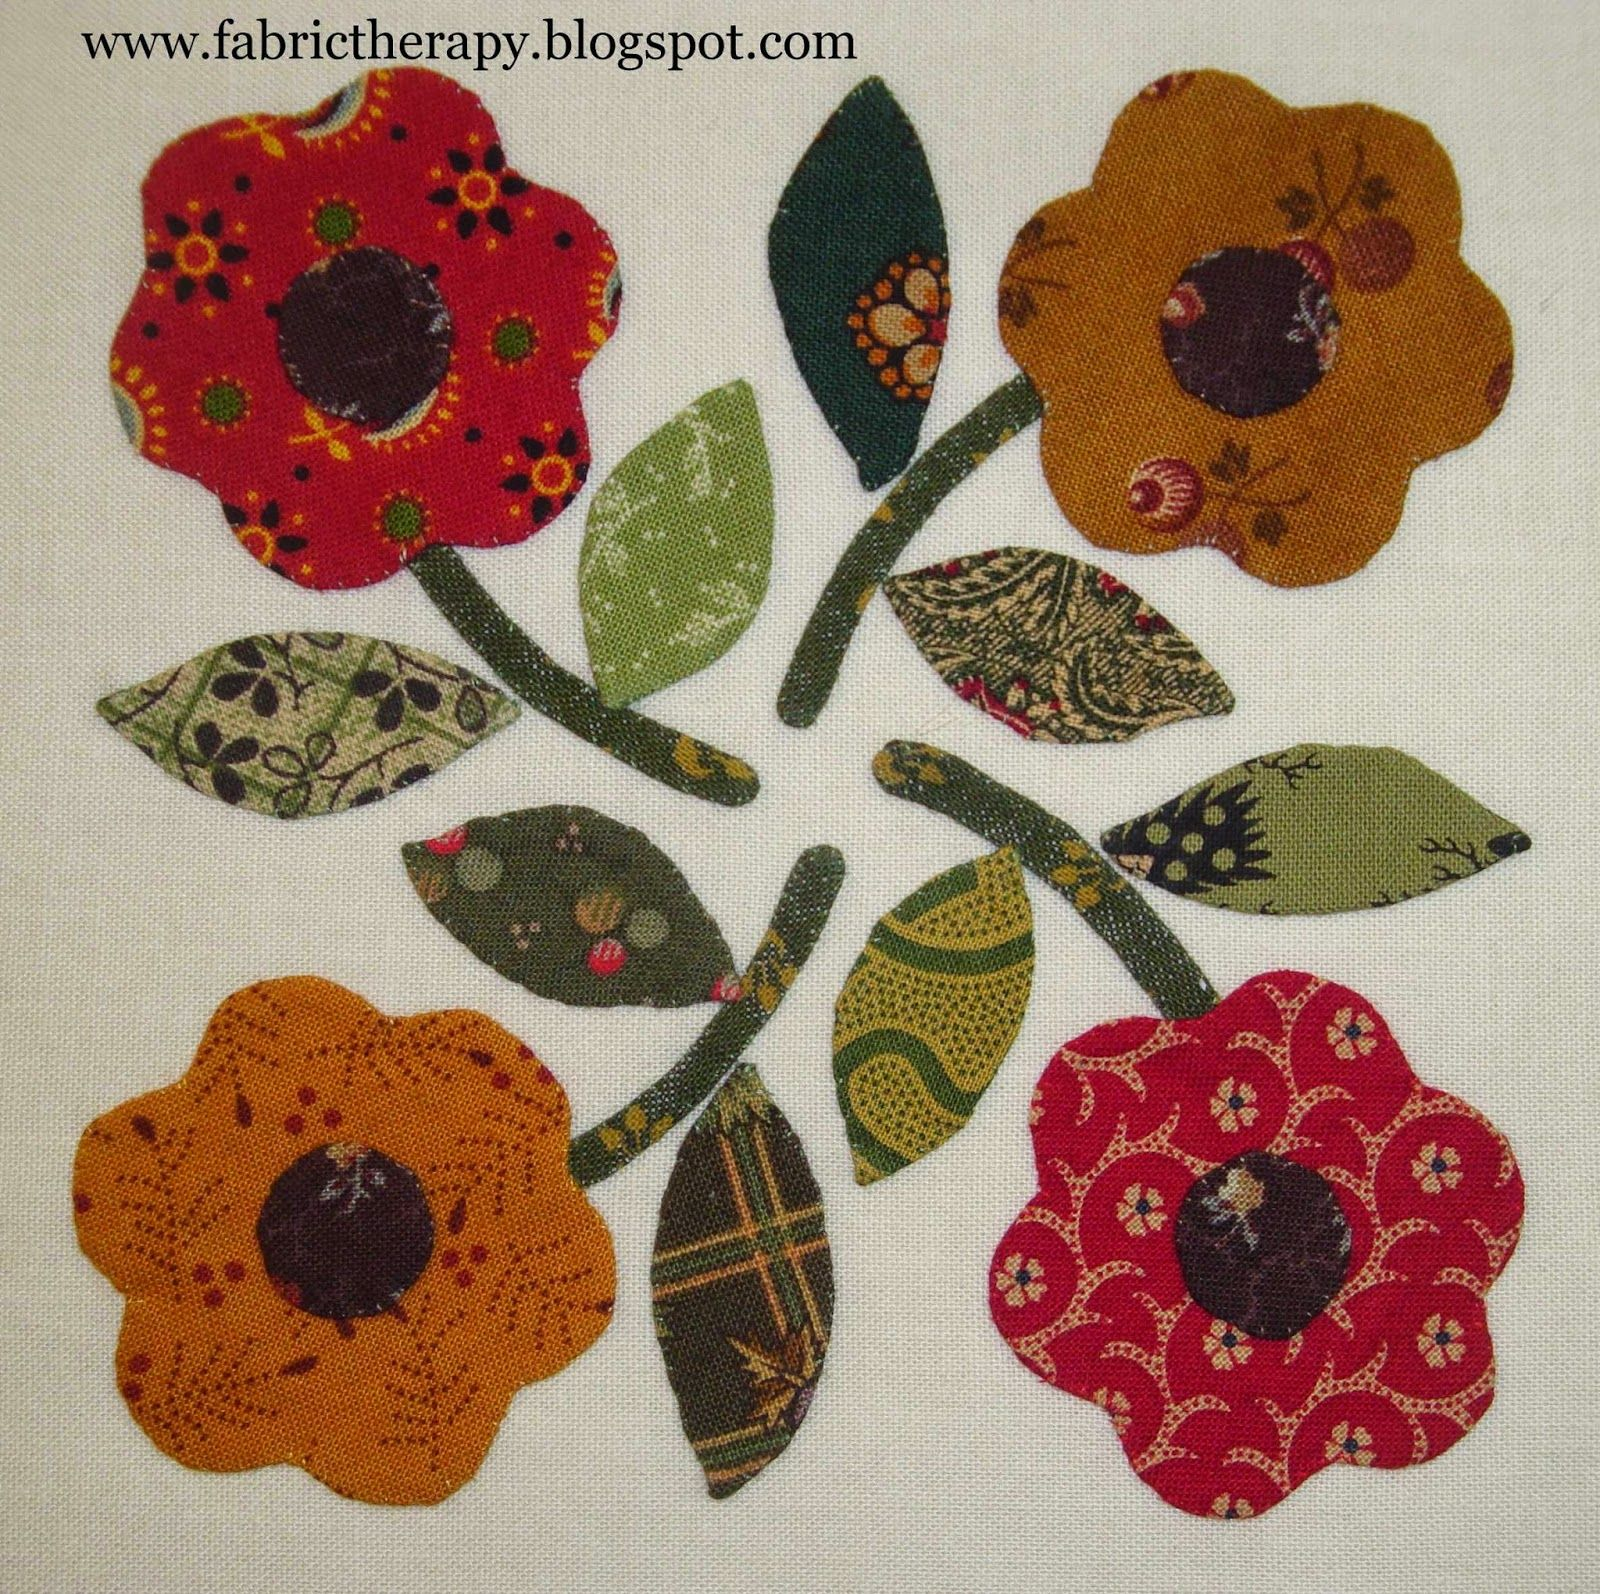 I have managed to finish 8 more little hand applique blocks from